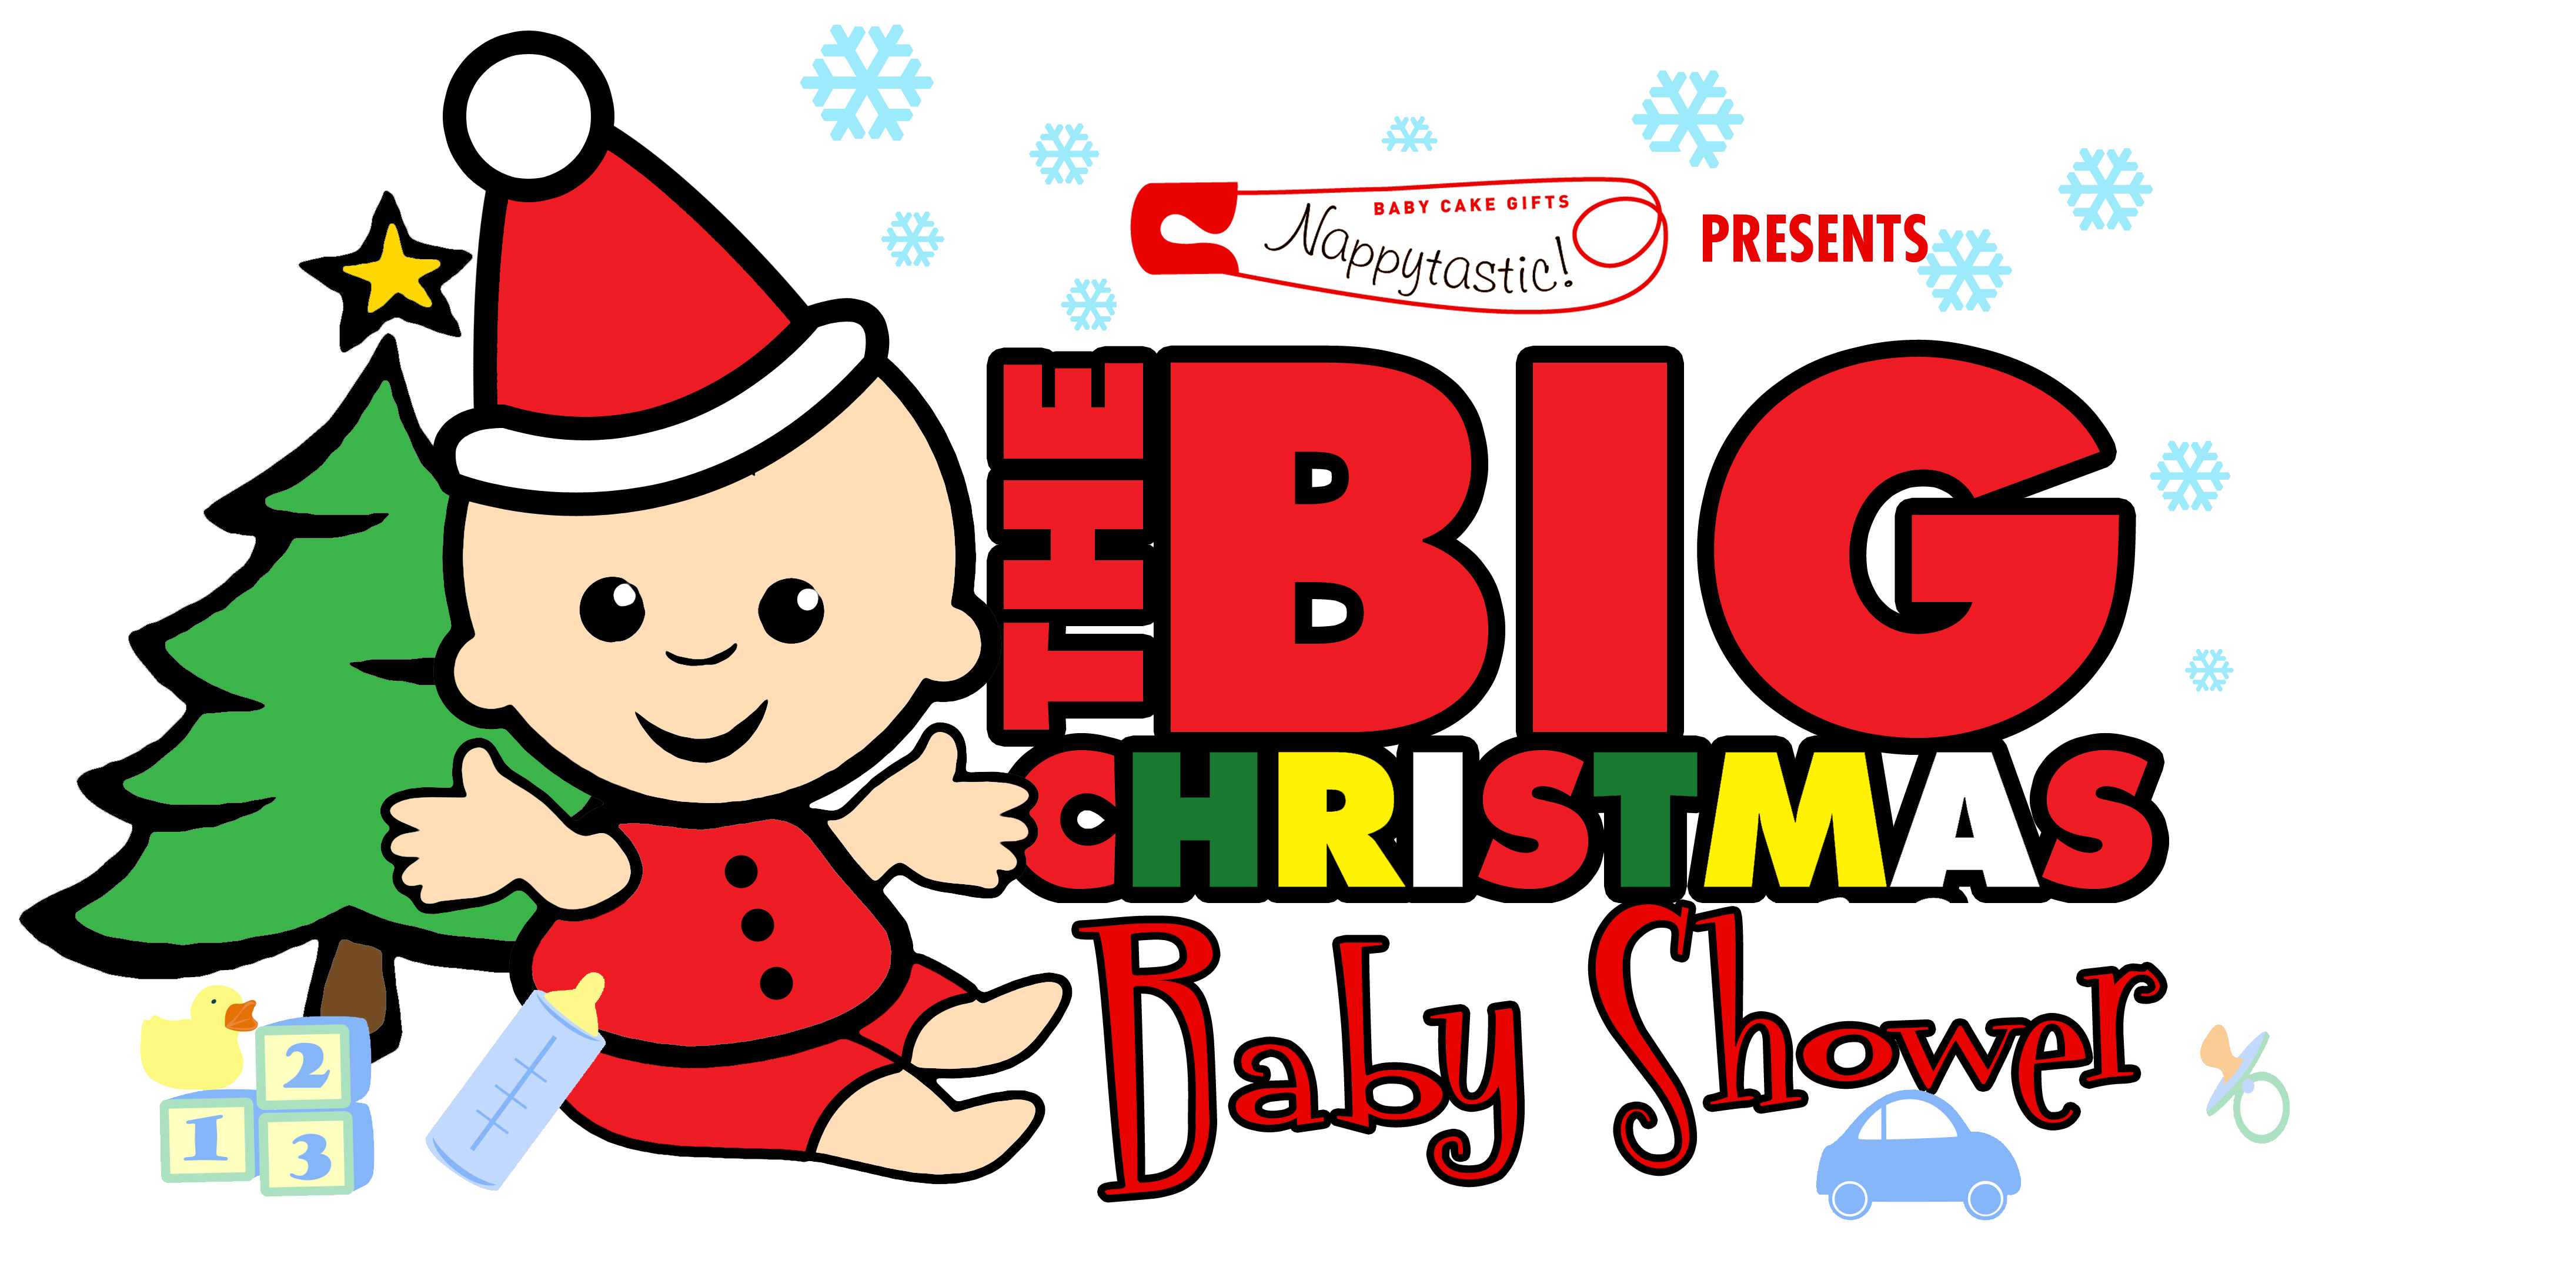 The BIG Christmas Baby Shower 2011 @Nappytastic